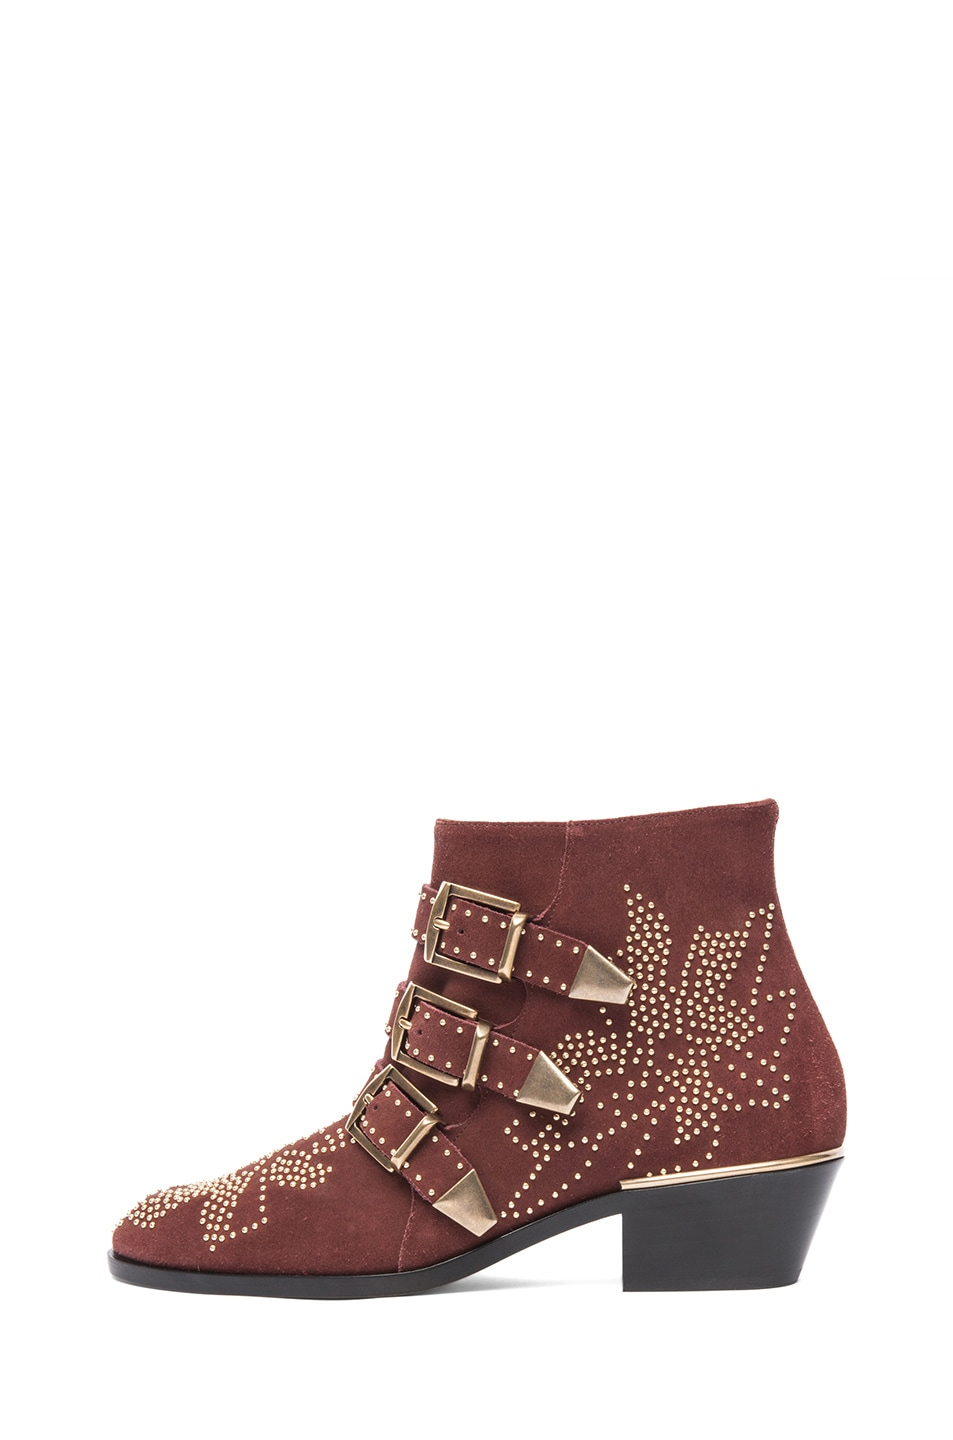 Image 1 of Chloe Susanna Suede Studded Booties in Red Vervain